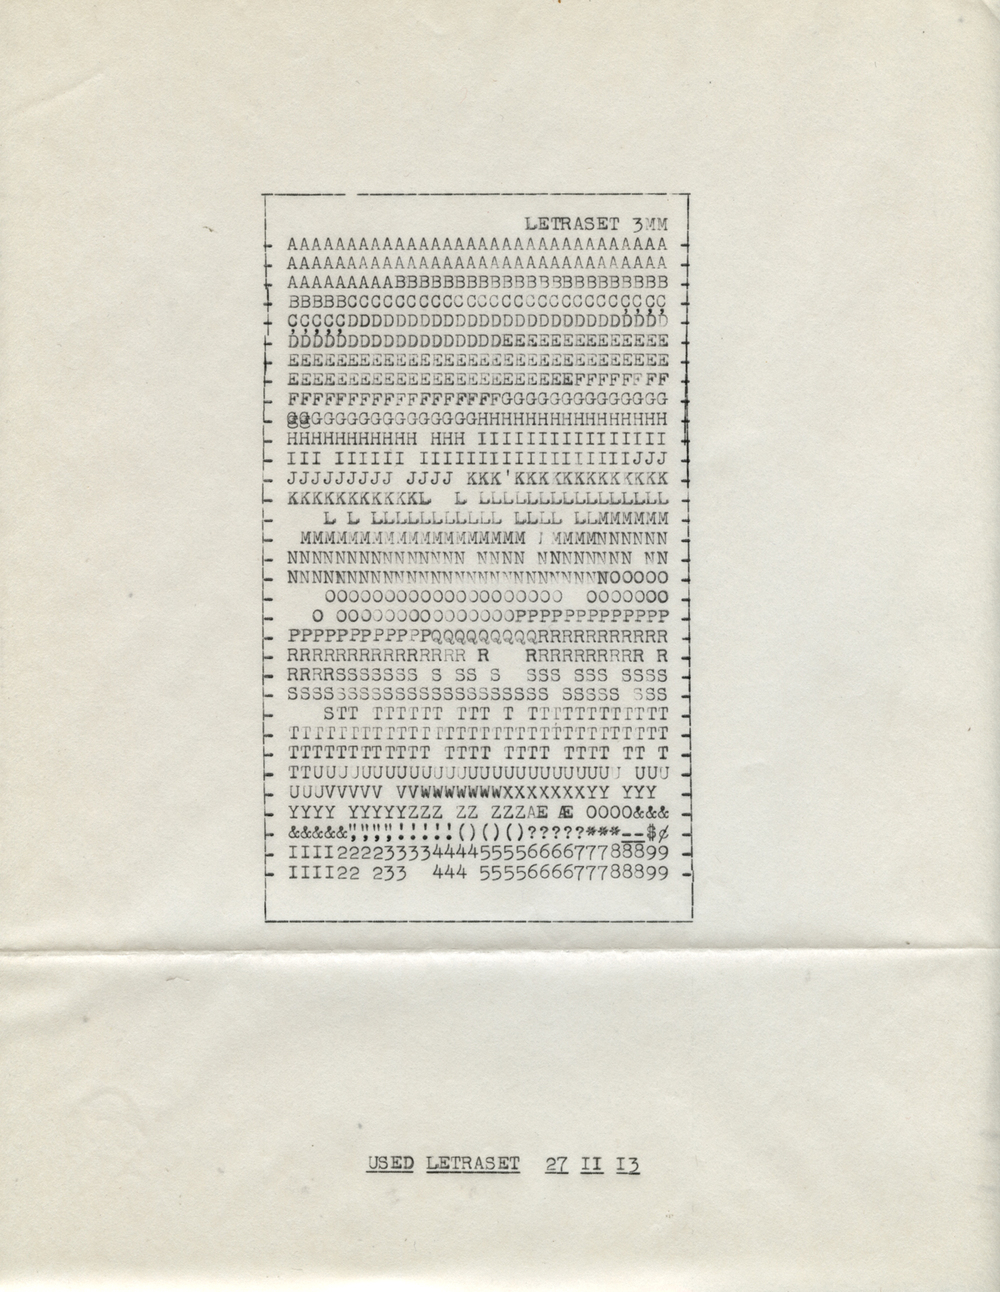 tw_27_11_2013_used_letraset.jpg